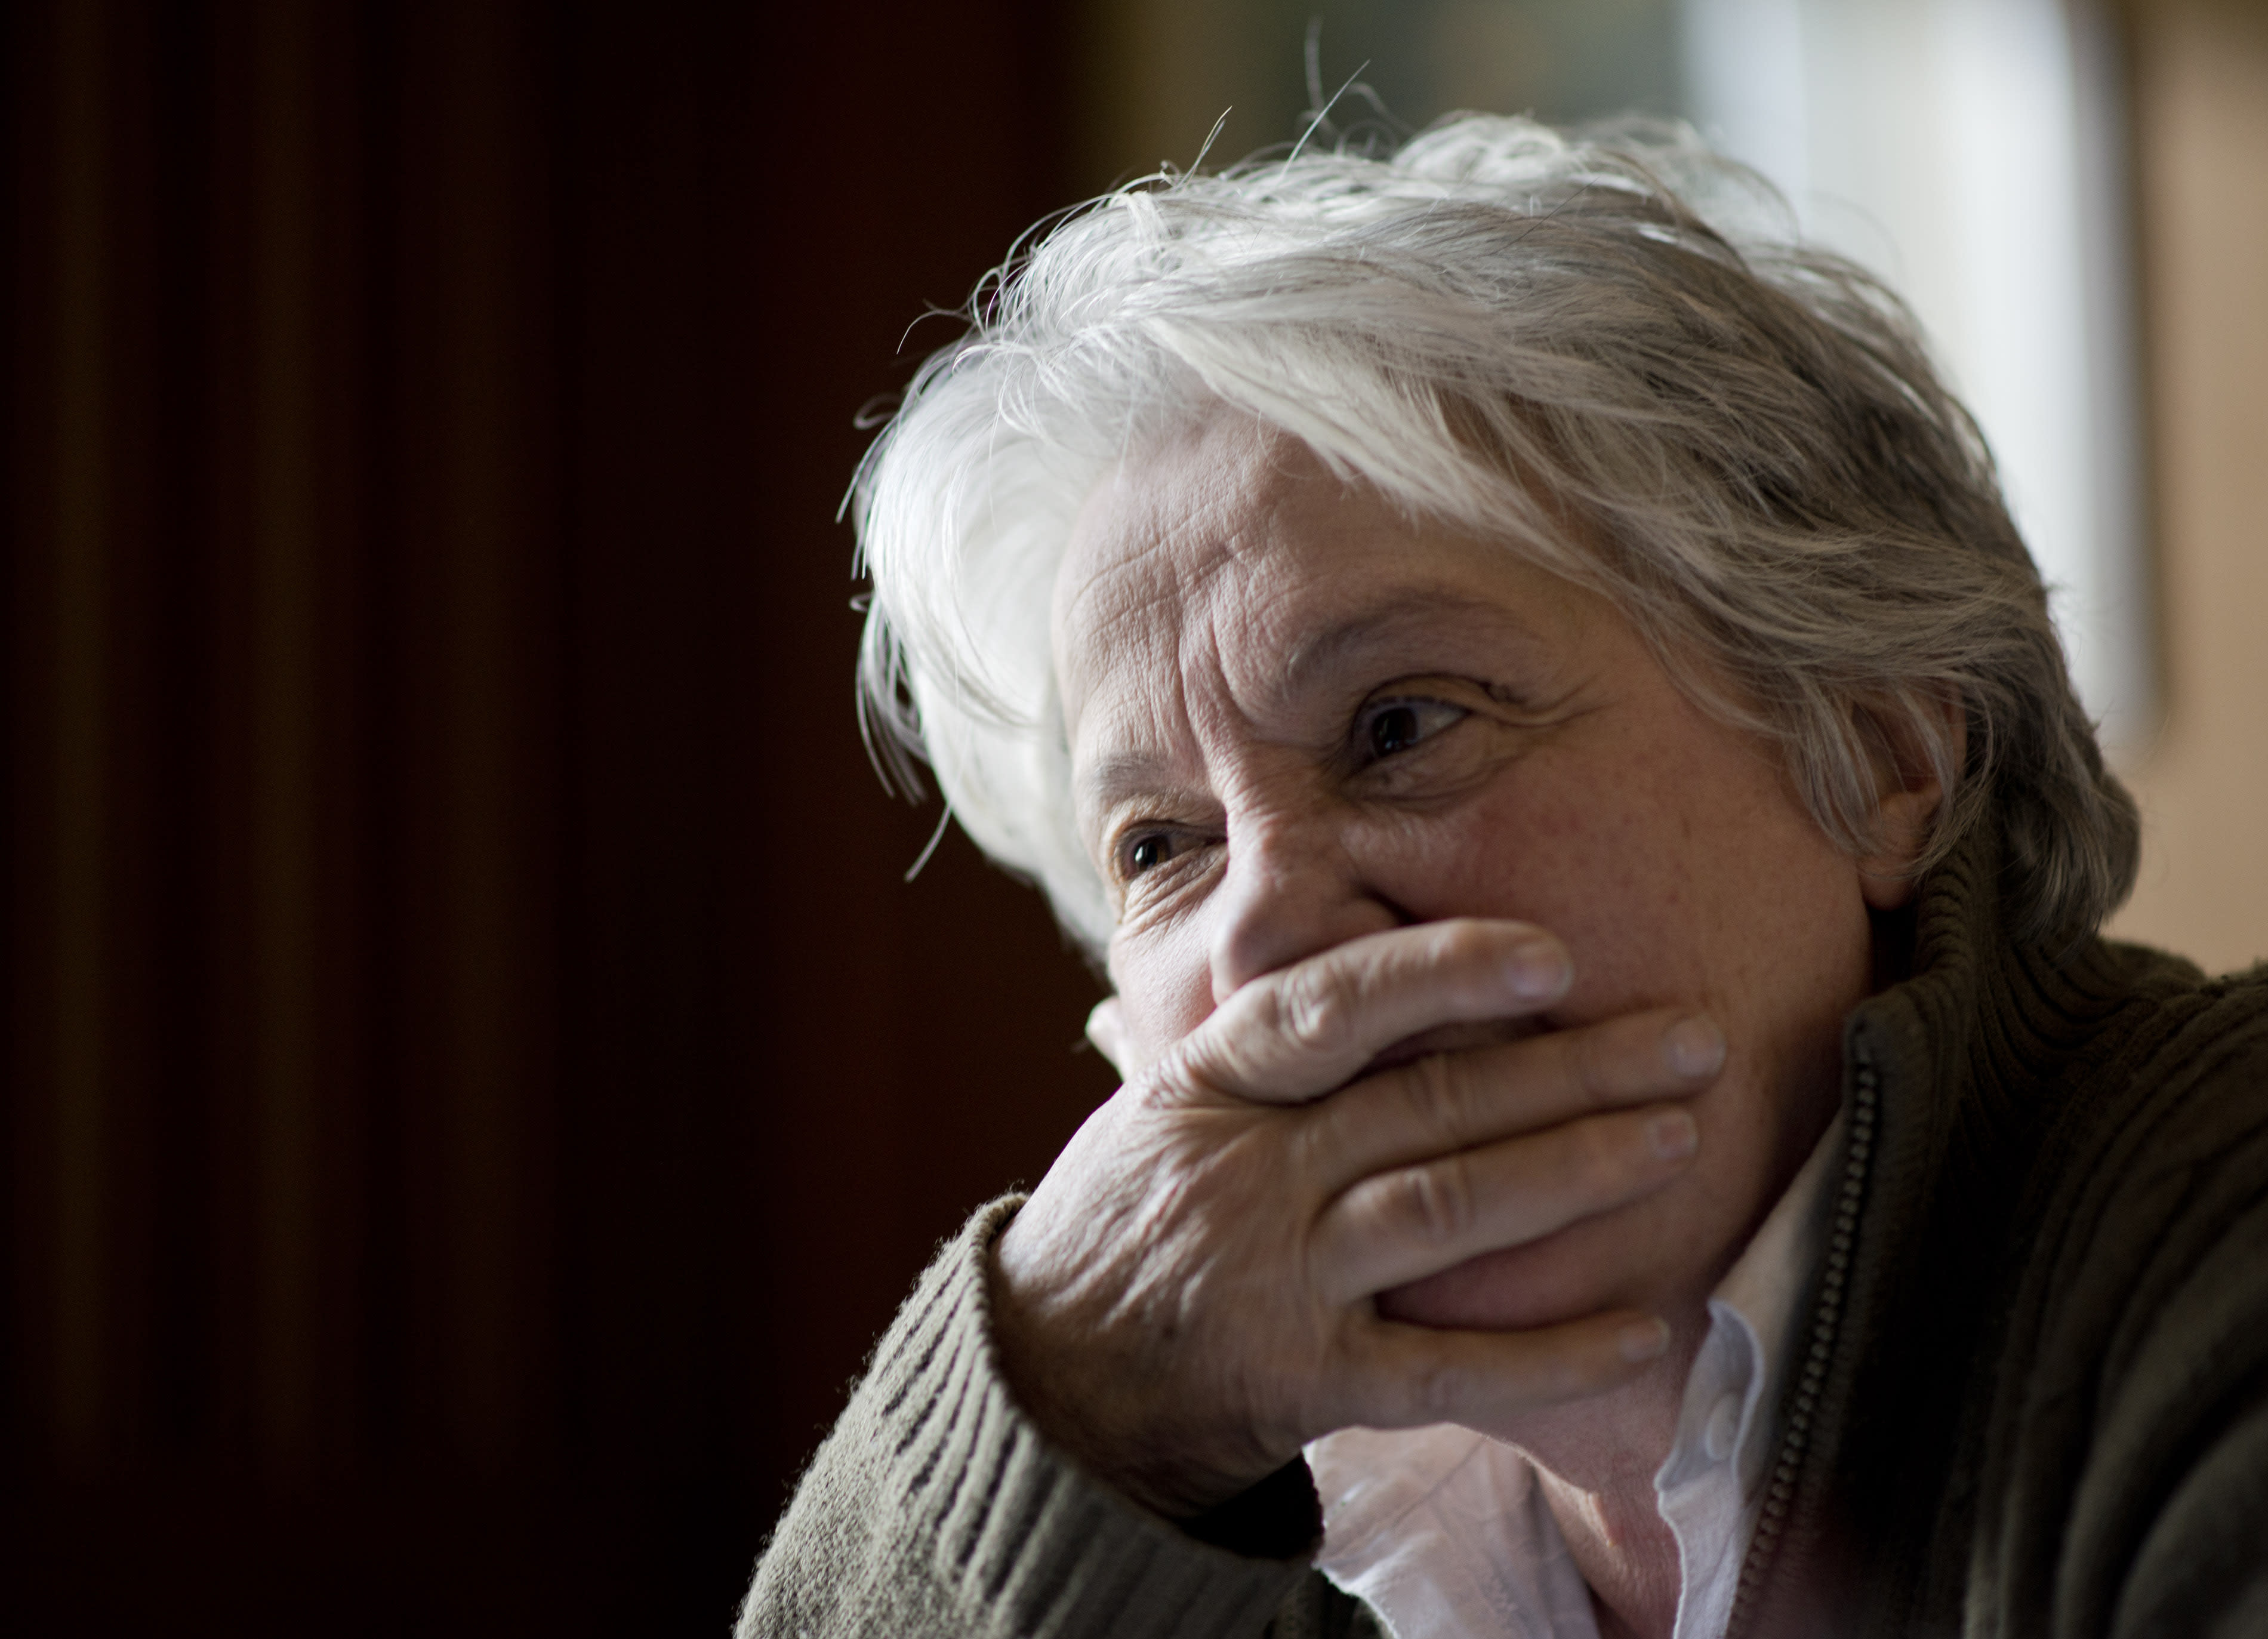 """In this Aug. 26, 2013 photo, first lady and Senator Lucia Topolansky pauses during an interview at her office in Montevideo, Uruguay. As a young woman, a revolutionary, a prisoner and a politician, she said she's always sought """"public happiness."""" (AP Photo/Matilde Campodonico)"""